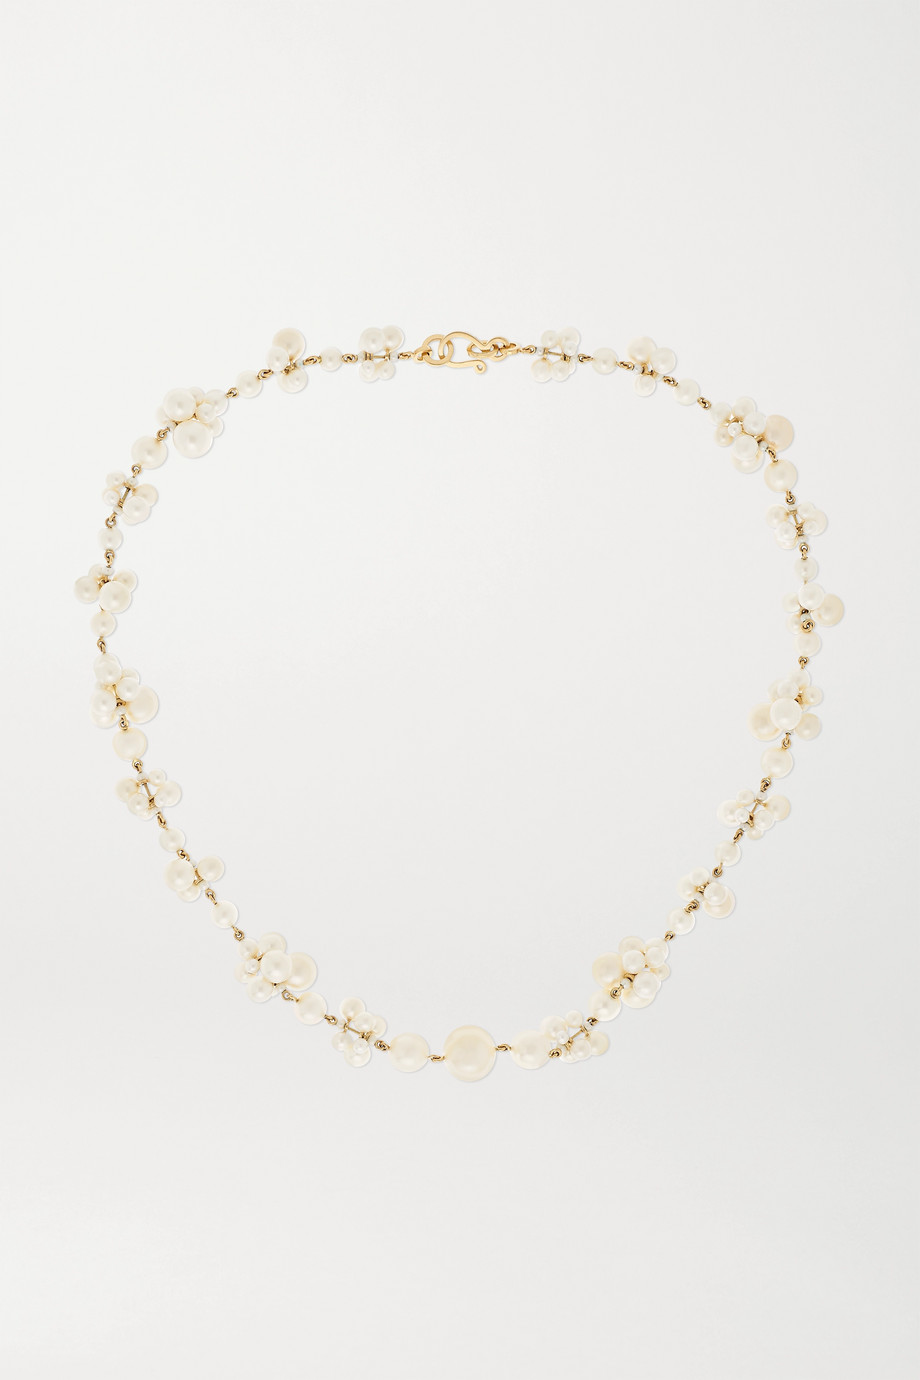 Sophie Bille Brahe Celli 14-karat gold pearl necklace